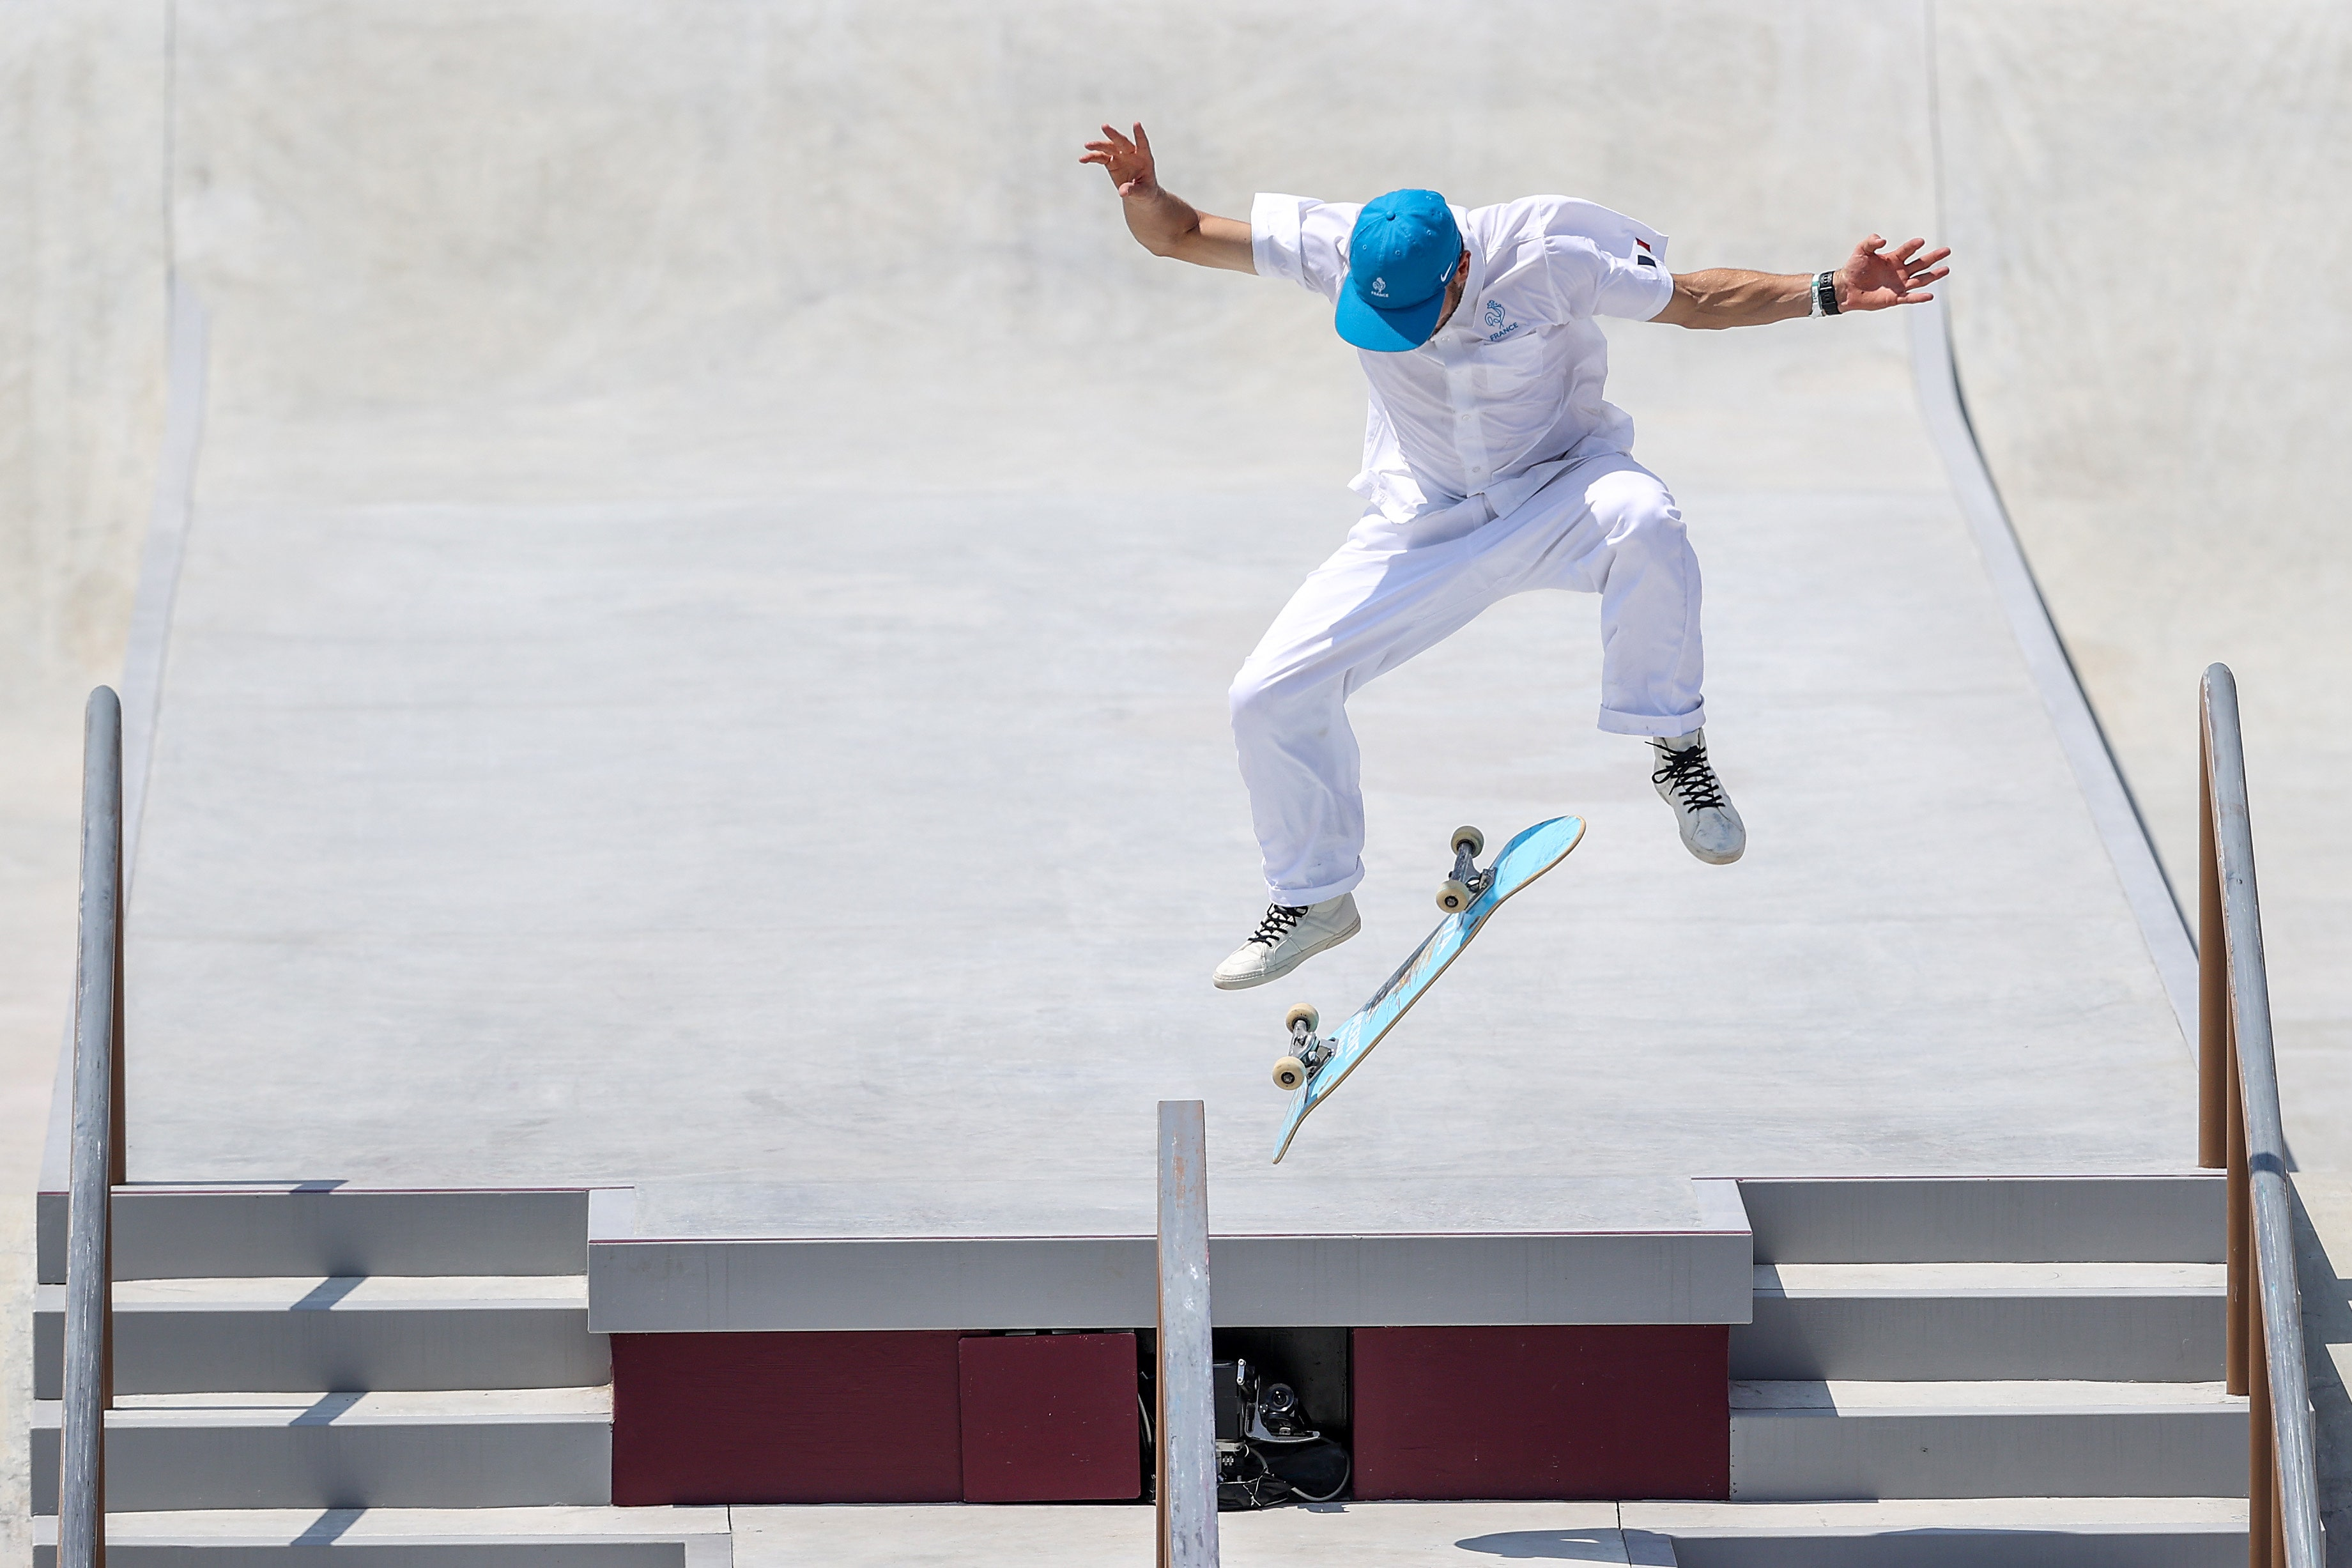 obviously,-skateboarding-has-the-coolest-uniforms-at-the-olympics